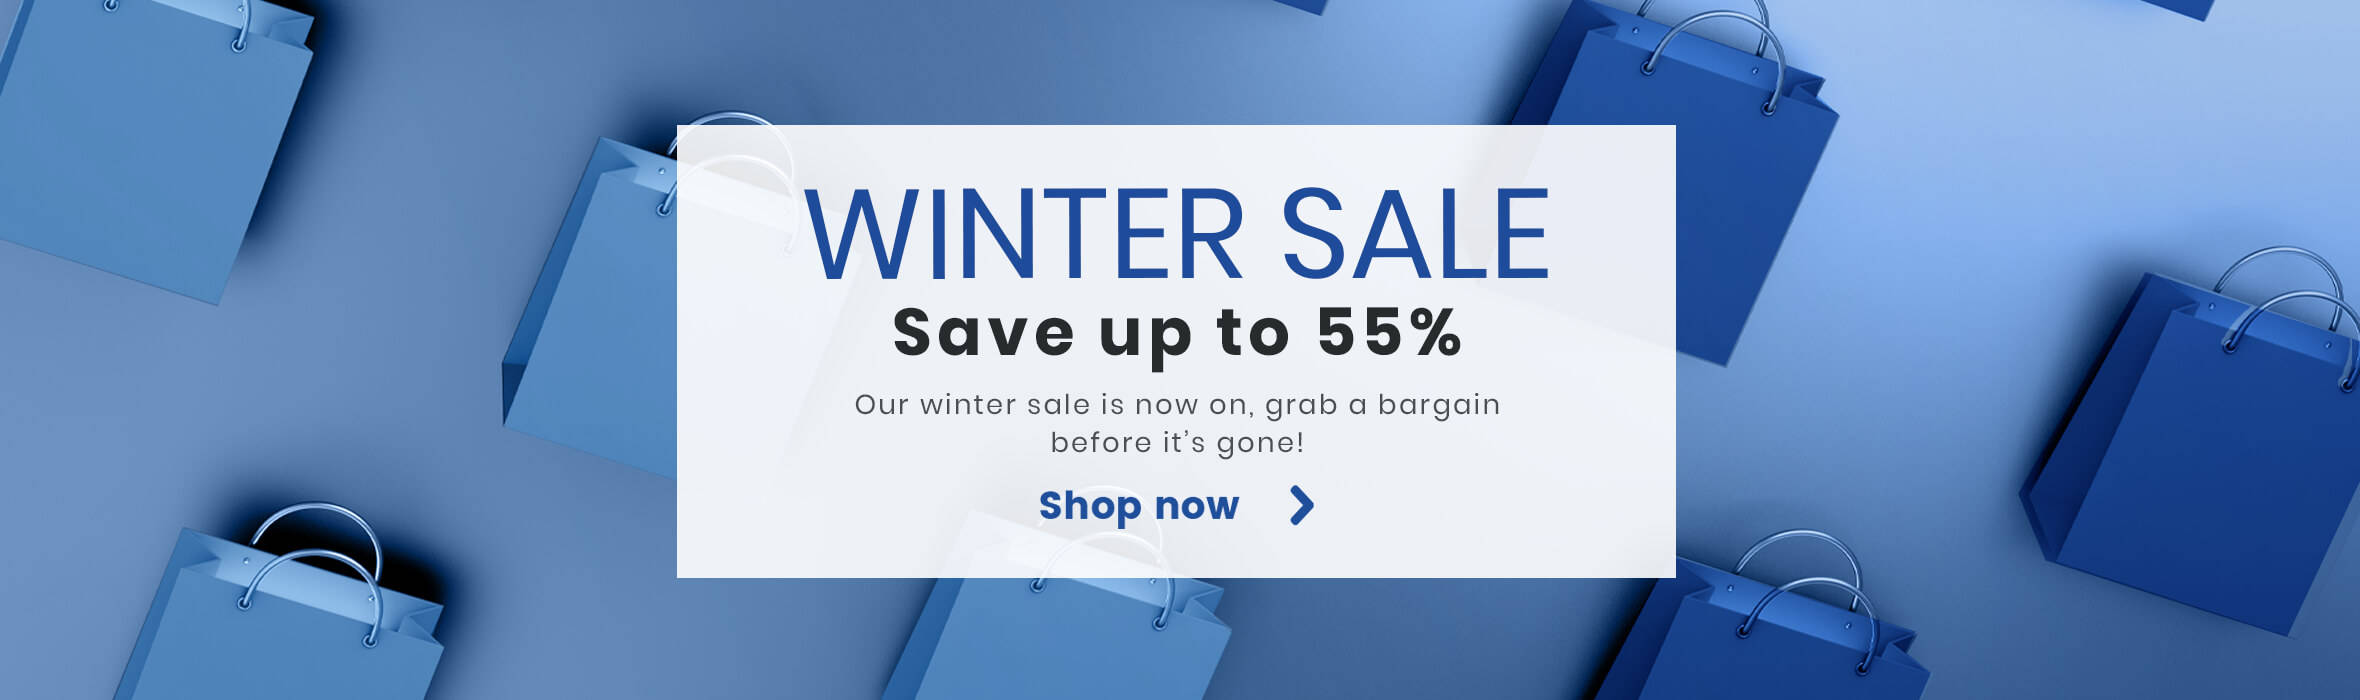 Save up to 55% in our Winter Sale